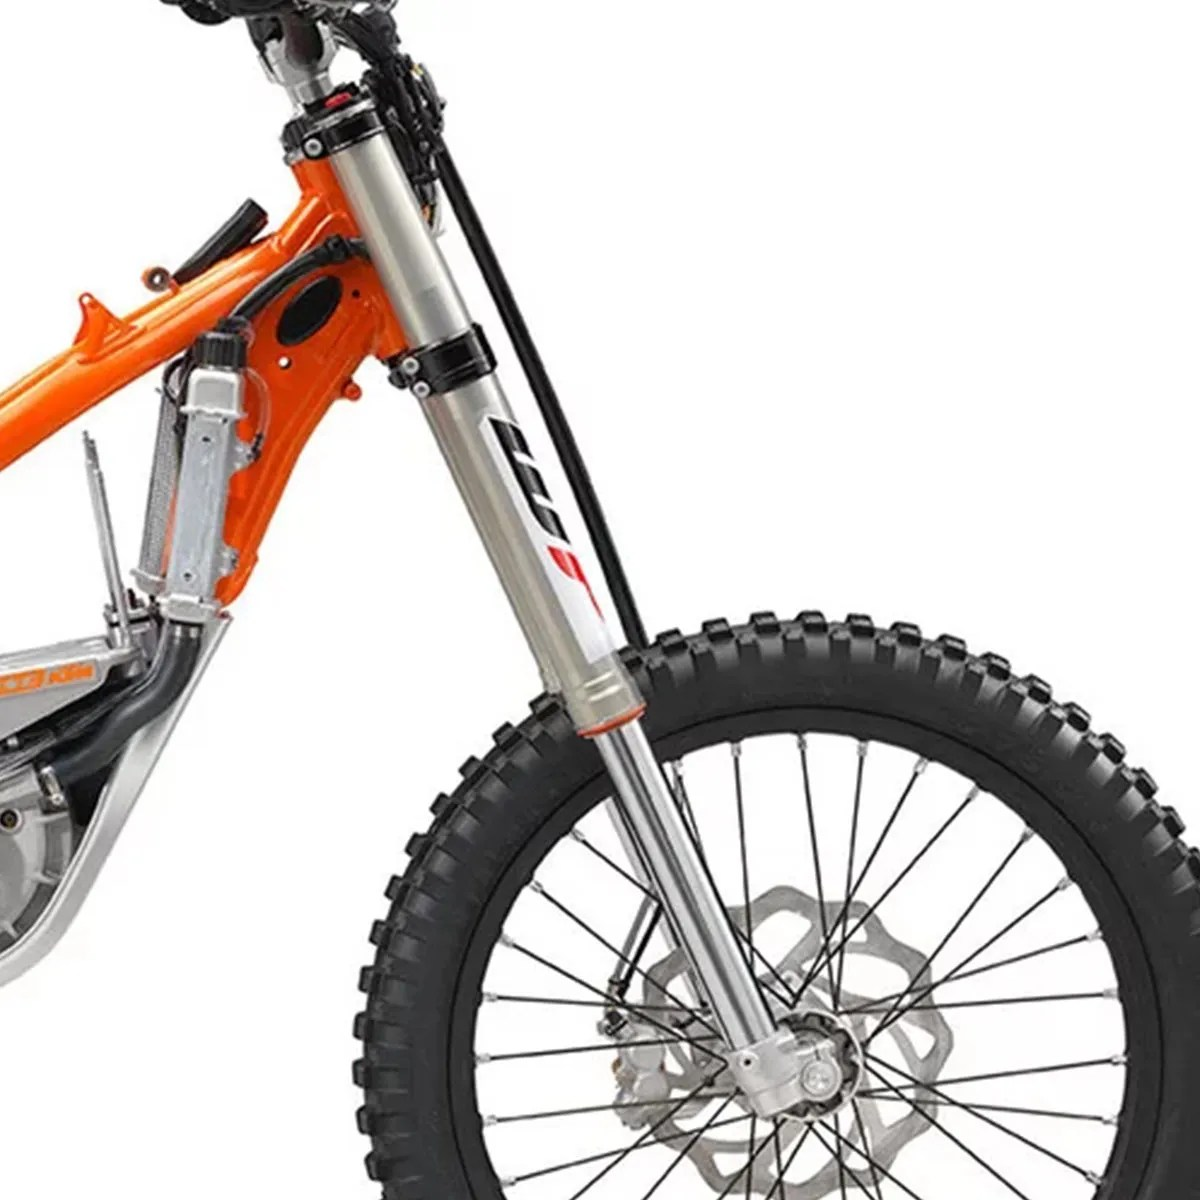 SUSPENSION-KTM-FREERIDE-E-XC-2020